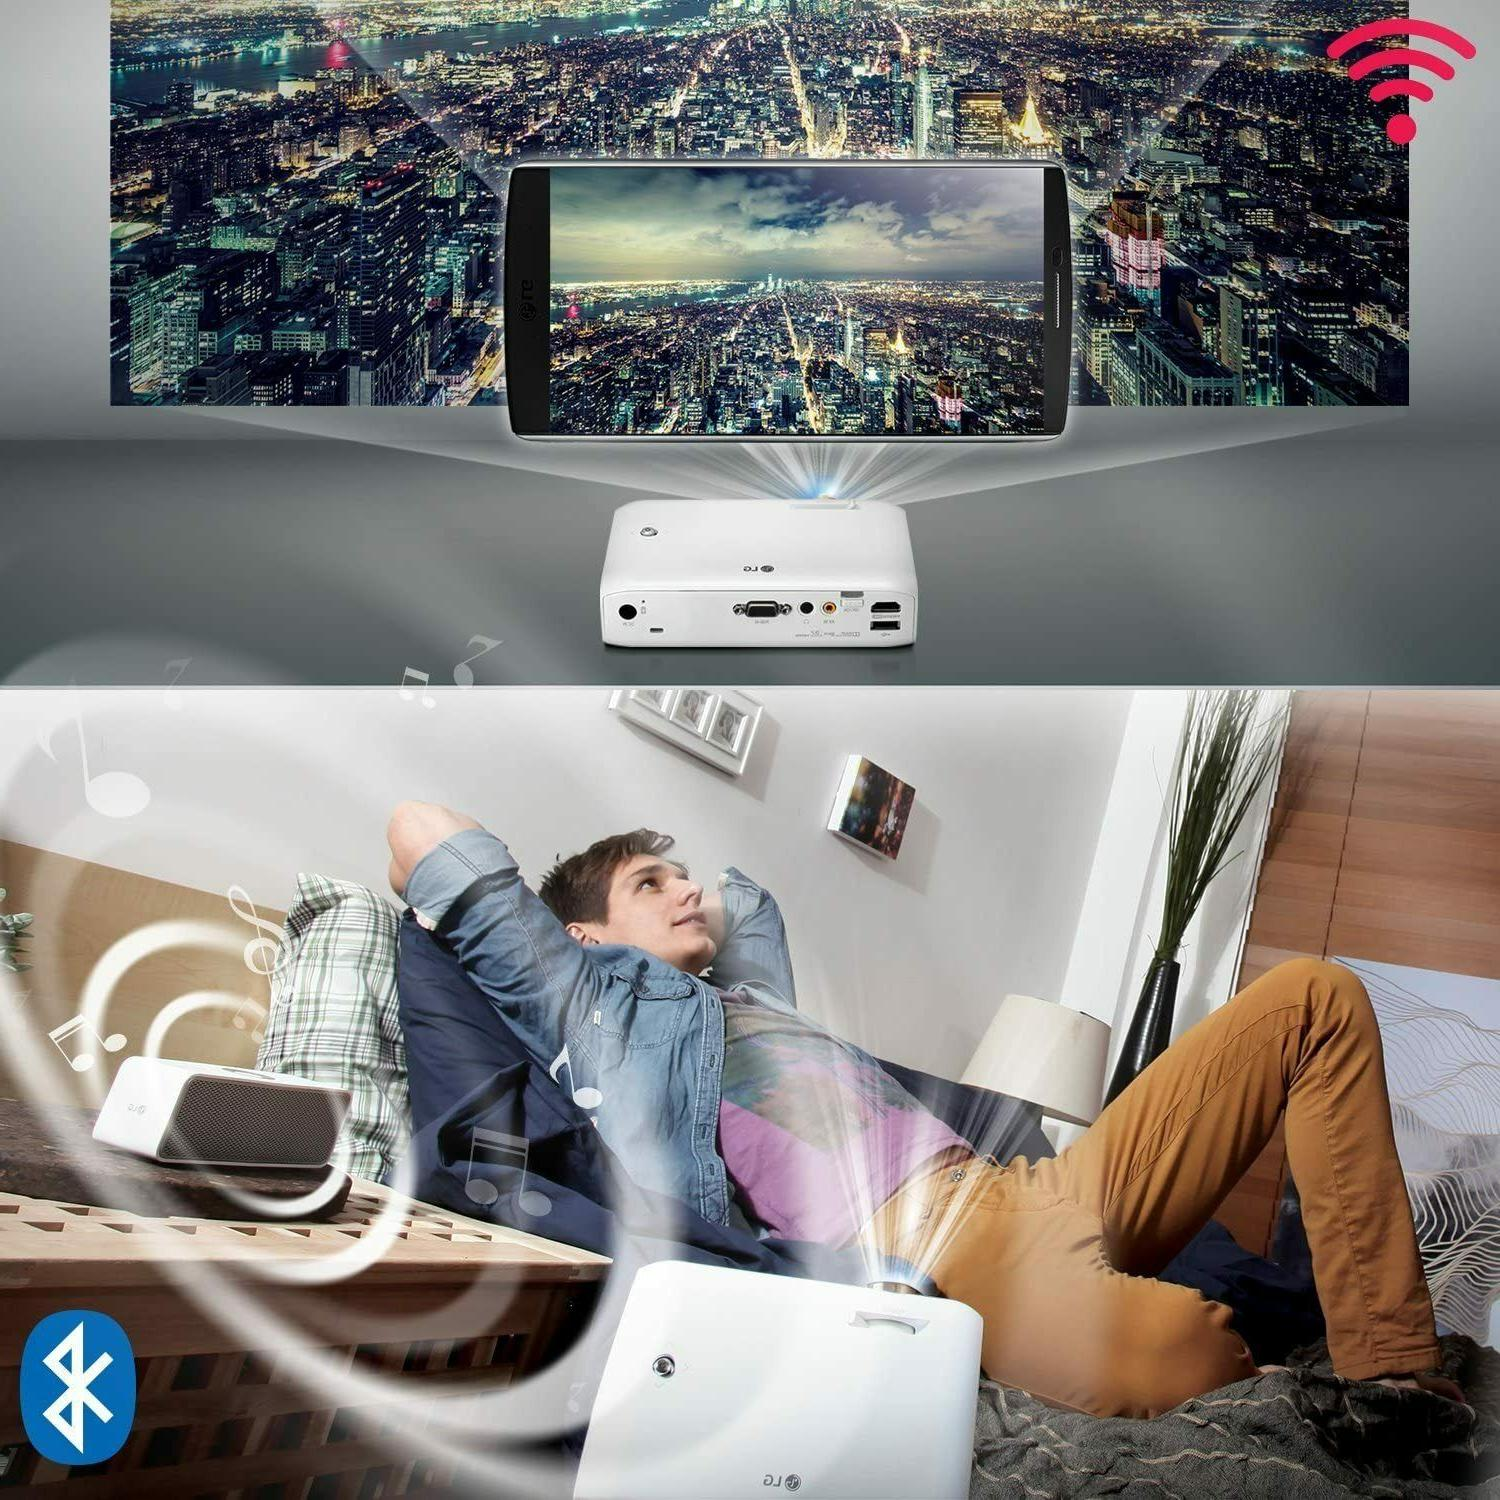 LG LED Projector Life 30000 /Hd/550Lm On